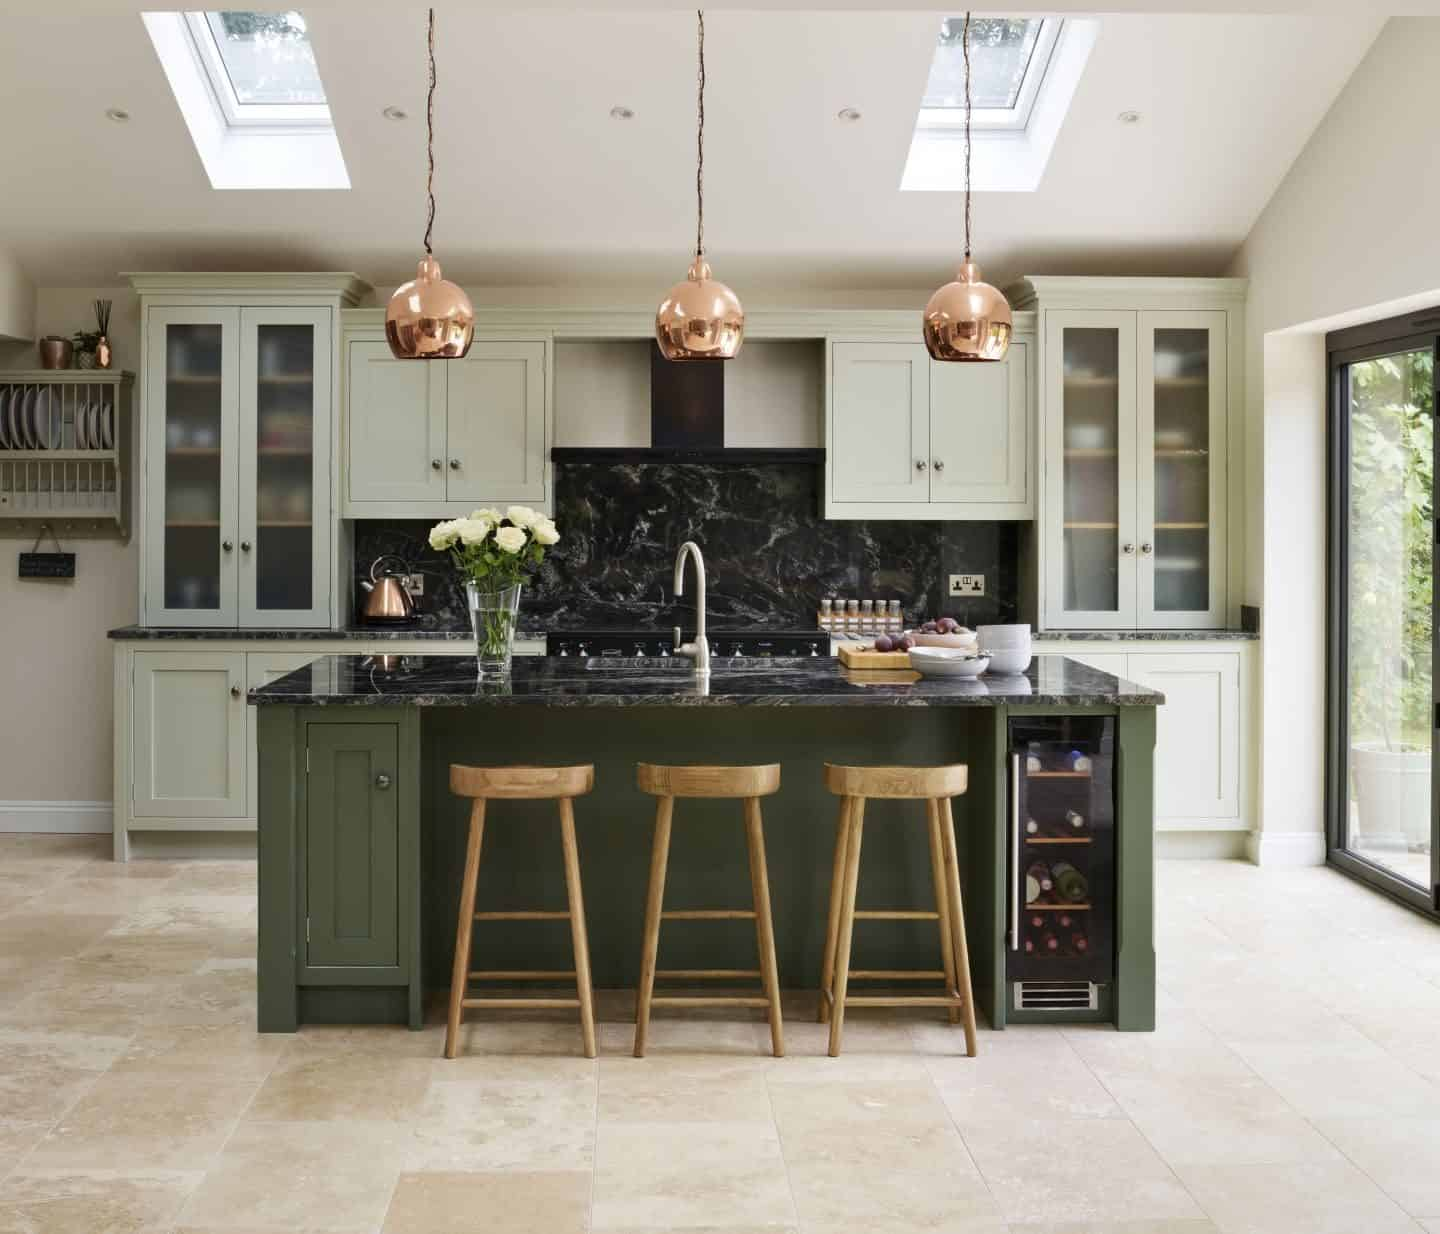 Farrow And Ball Kitchen Cabinets: Trend : Colourful Kitchen Cabinetry